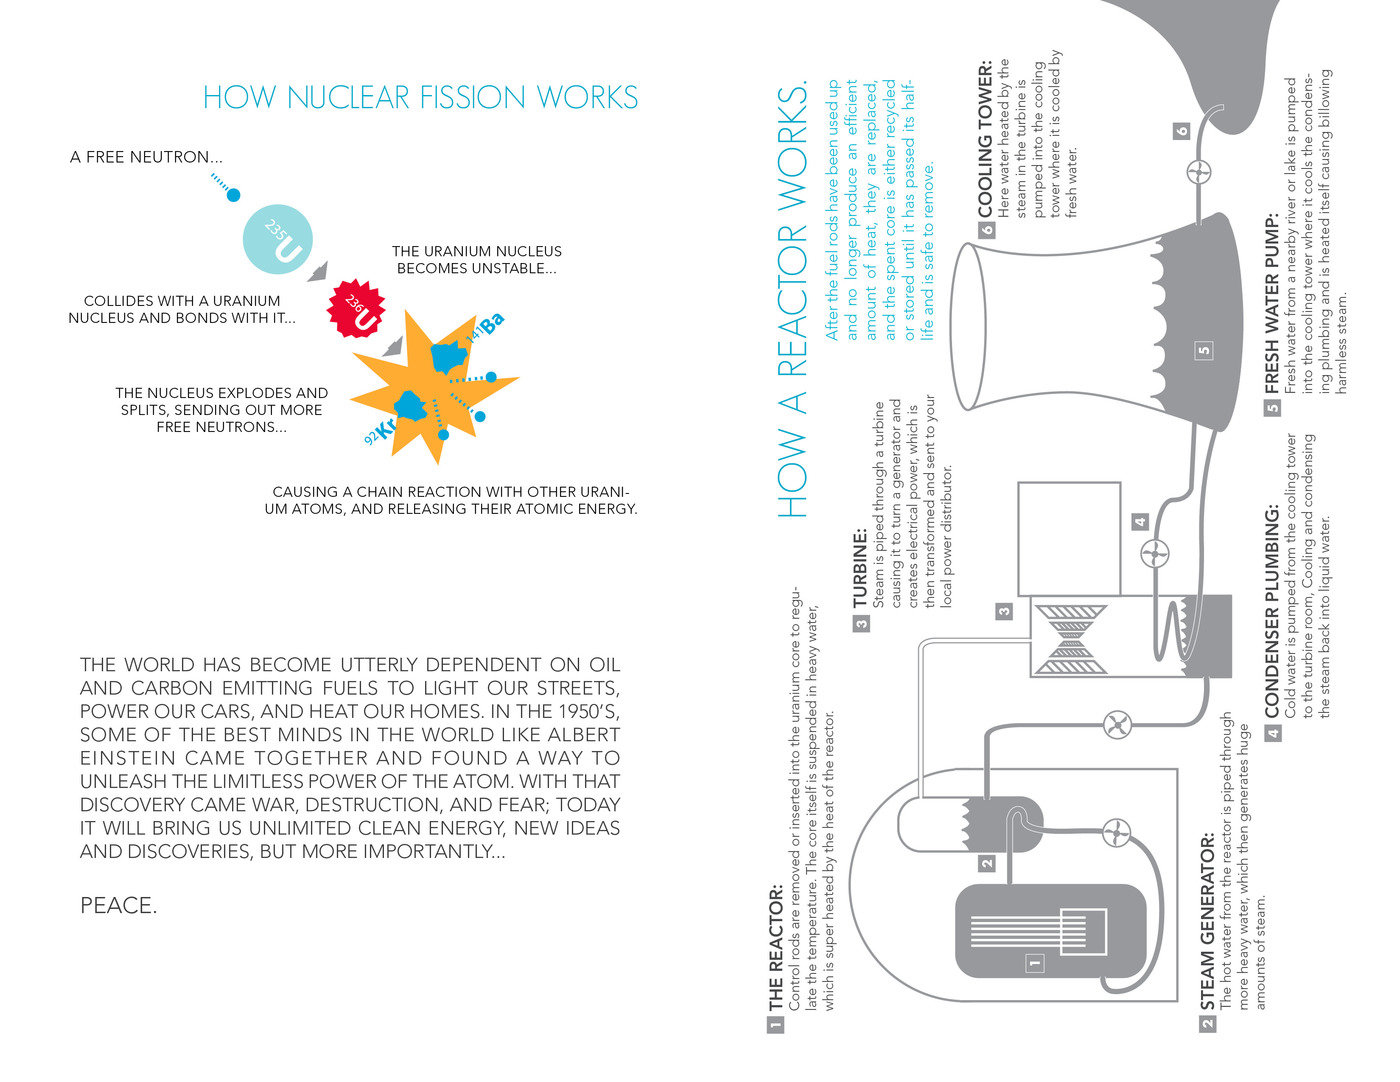 Thesis Project By Jakob Dodge At Nuclear Power Plant Simple Diagram Are Spreads To A Free Brochure That I Passed Out During The Miad Senior Exhibition It Features Diagrams Of How Works